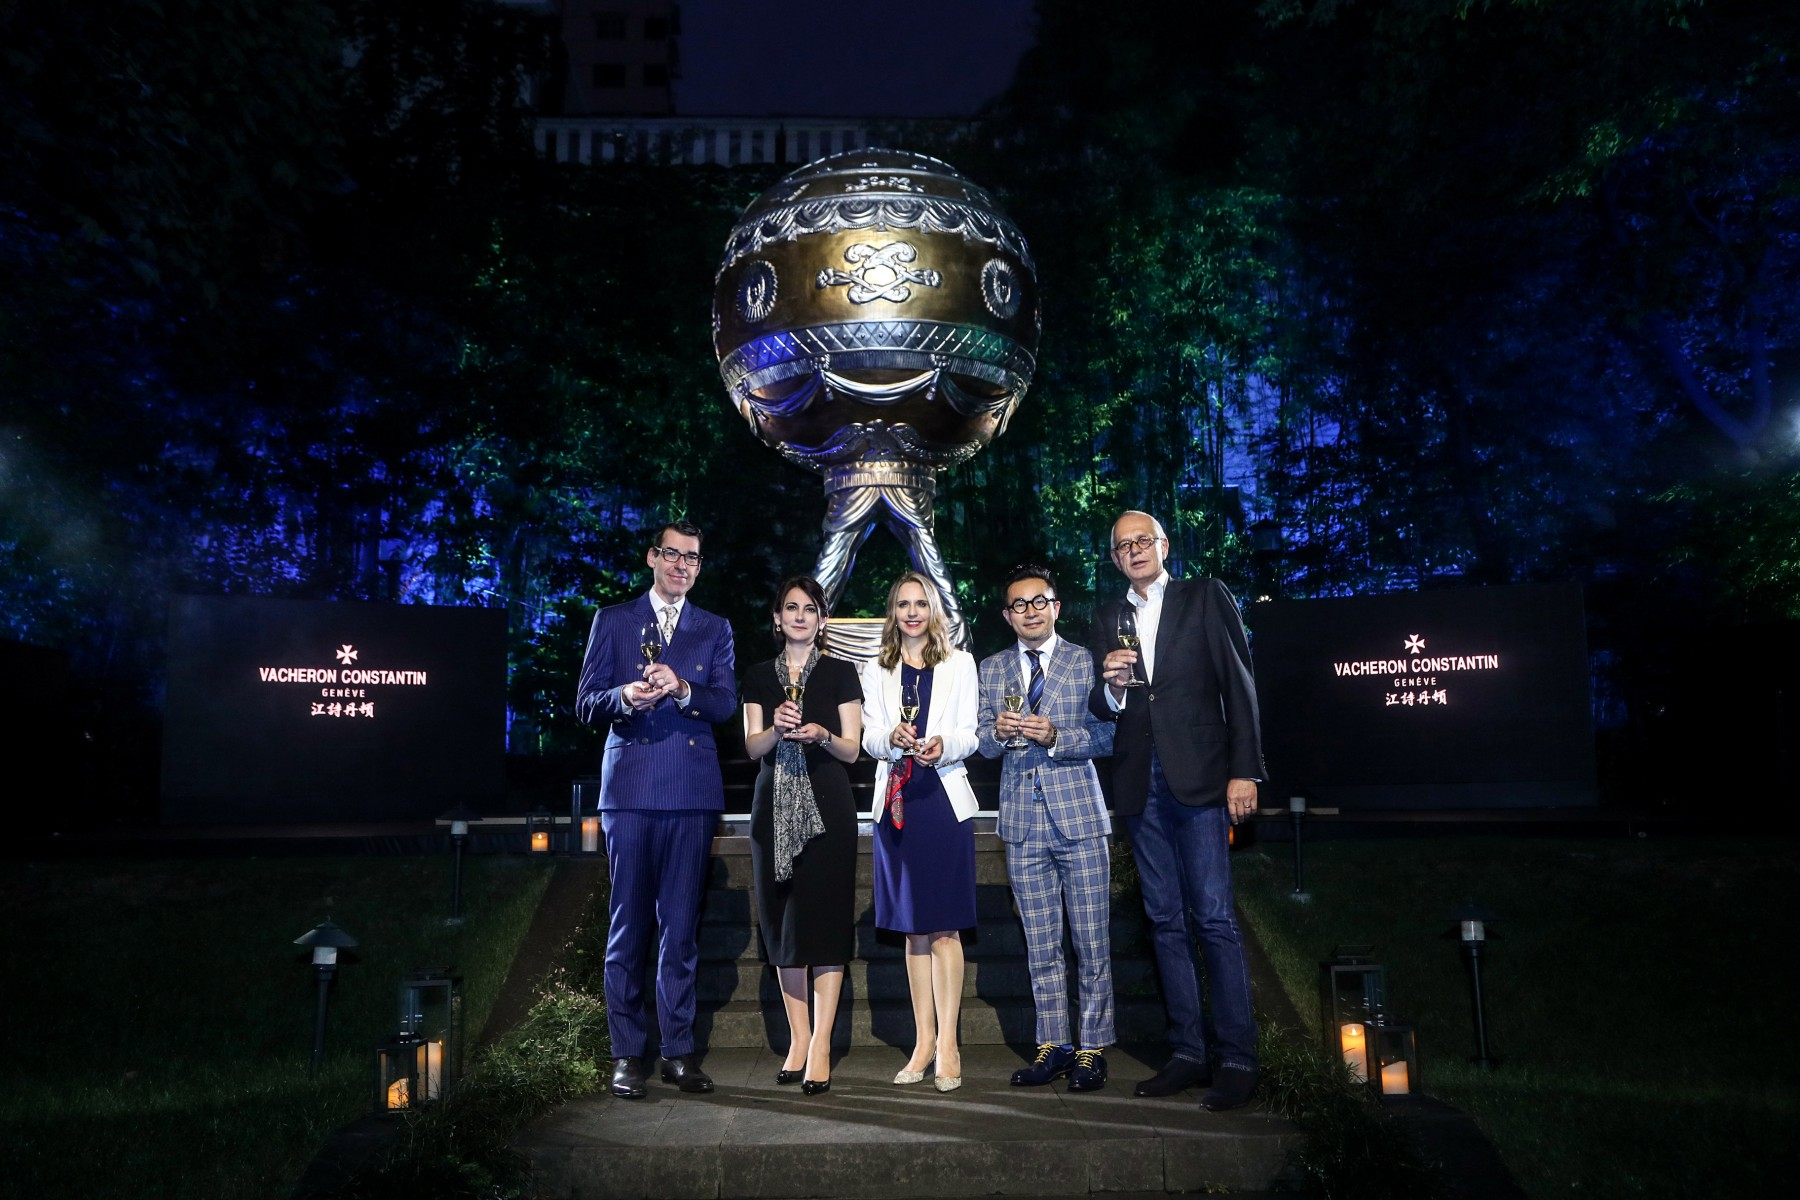 Mr. Christian Selmoni, Style and Heritage Director - Ms. Clemence Charrier, International Retail Director - Mrs. Ellen Sorensen, Managing Director of Vacheron Constantin China - Mr. Pierre Liu, General Manager of Vacheron Constantin China - Mr. Dominique Bernaz, Les Cabinotiers Clients Director